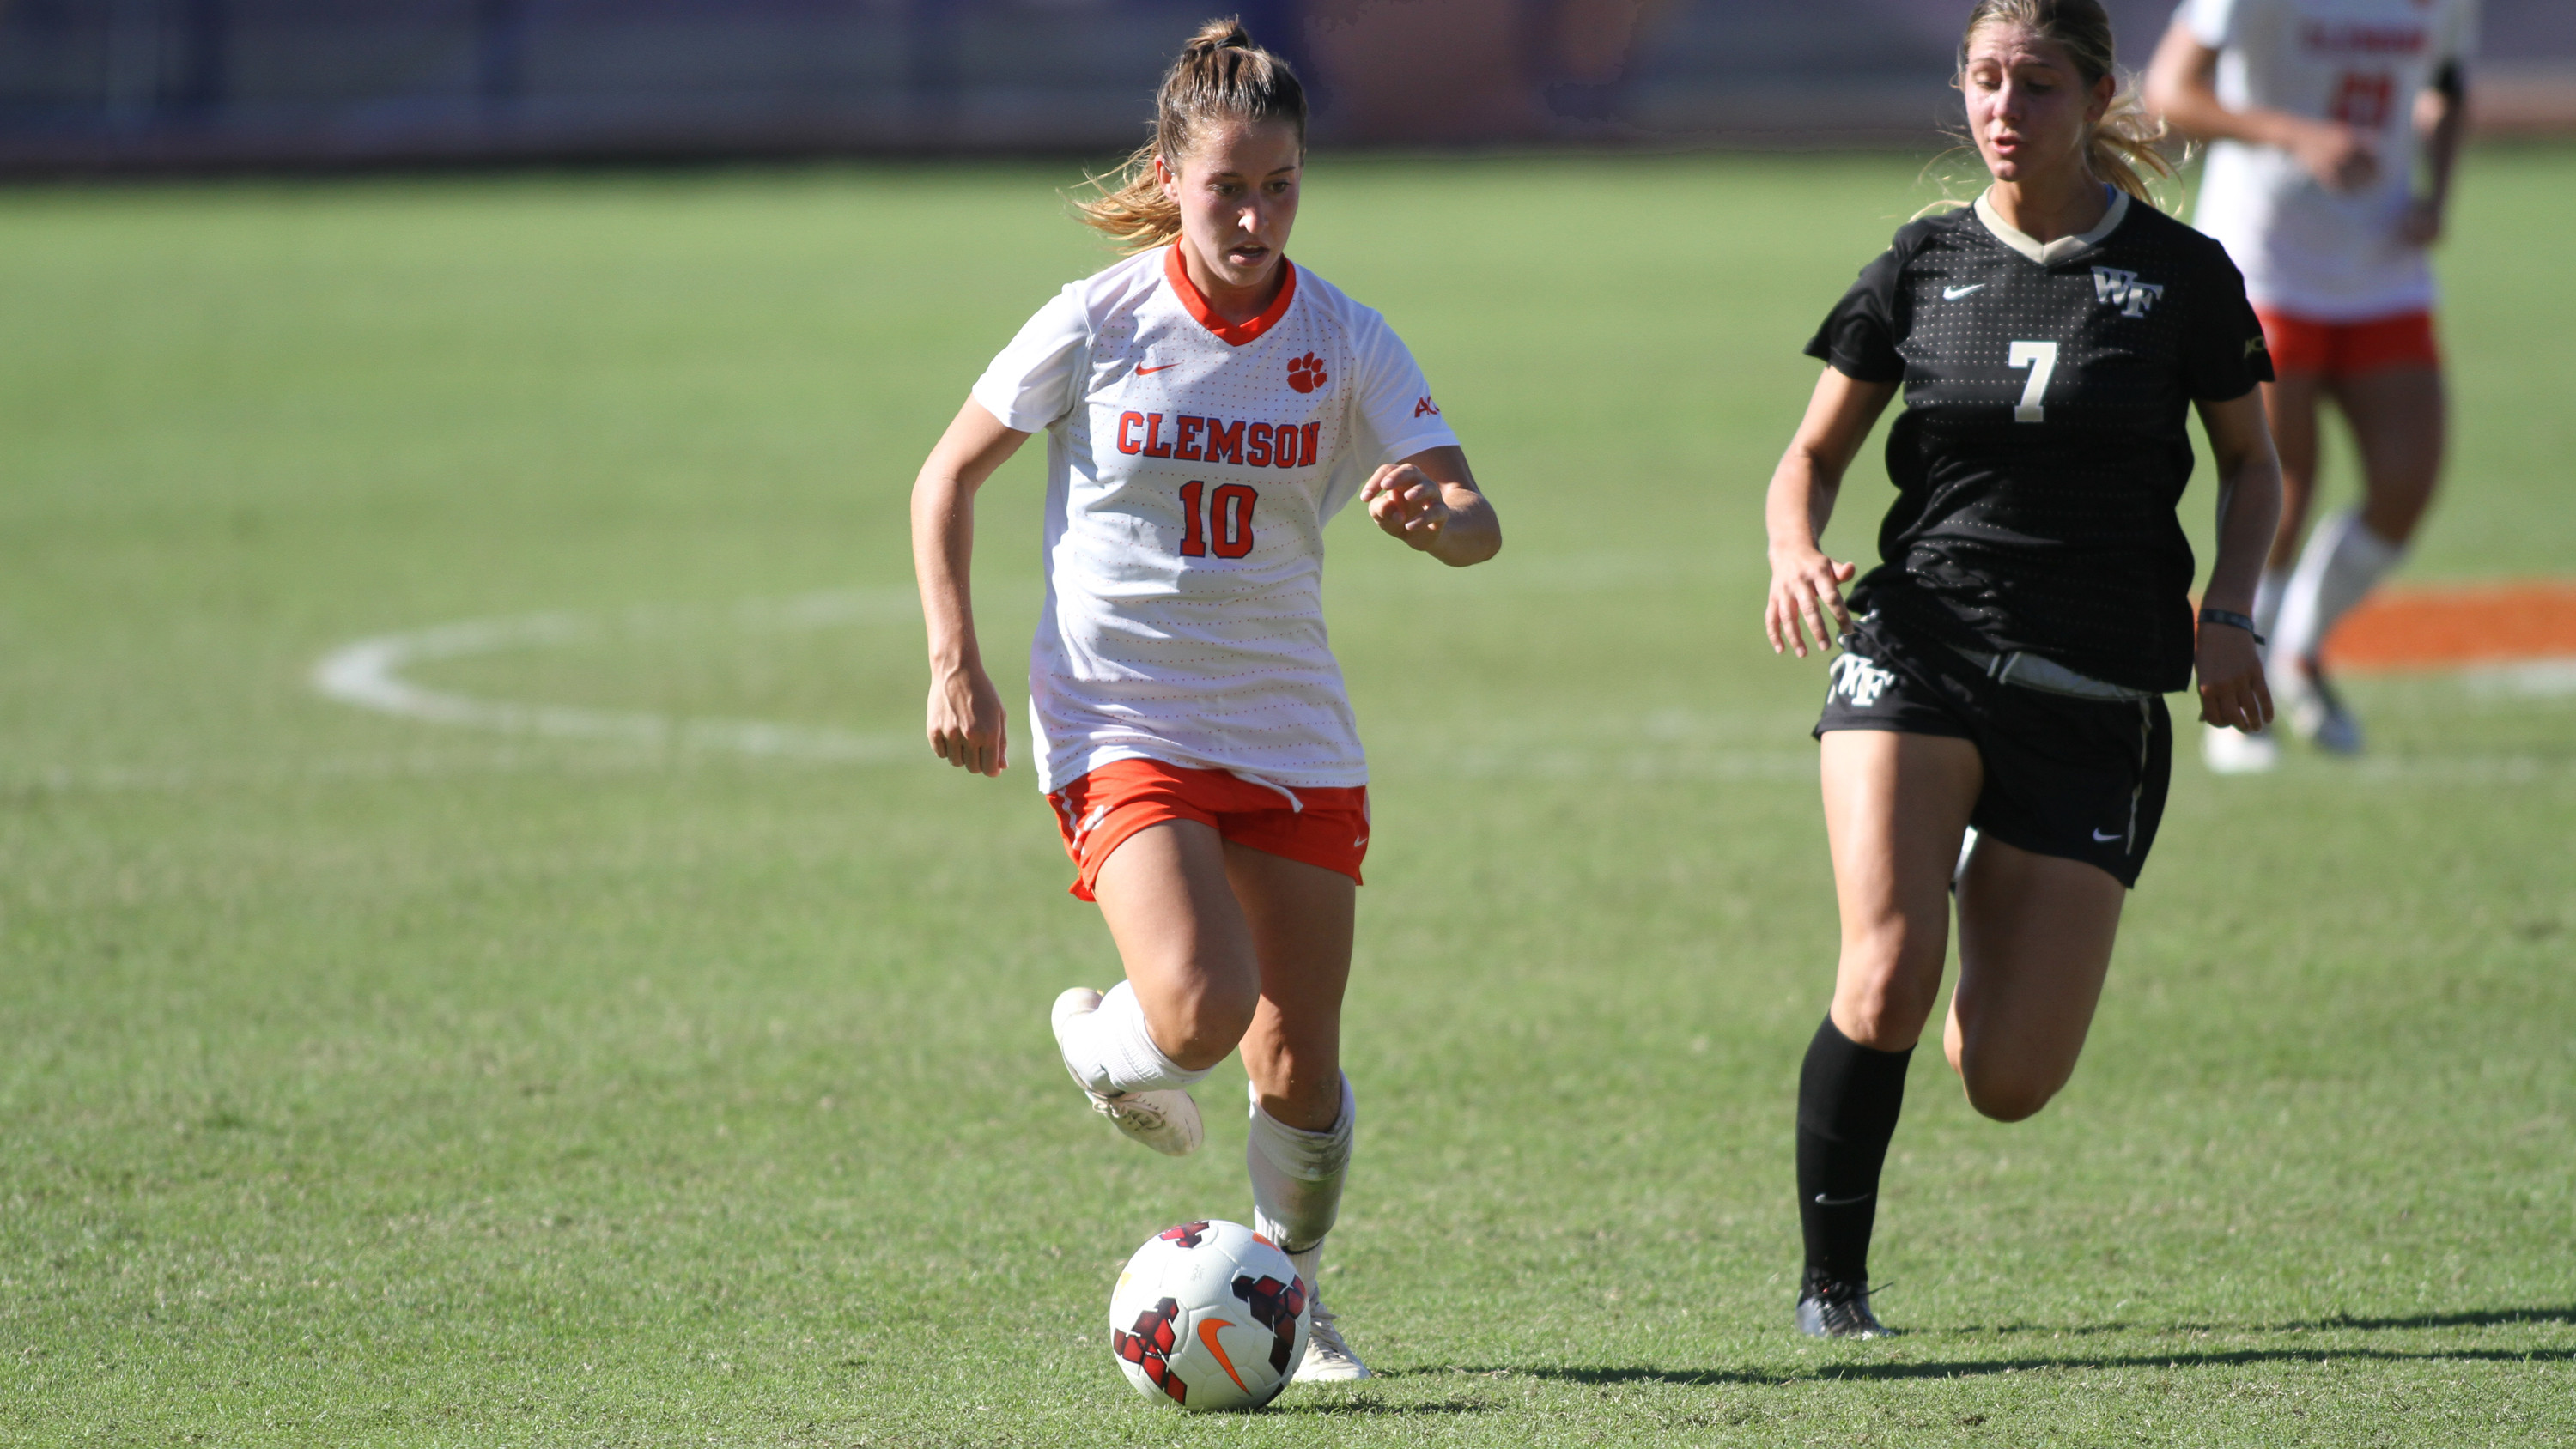 Clemson Falls to #19 Wake Forest 1-0 Sunday at Historic Riggs Field